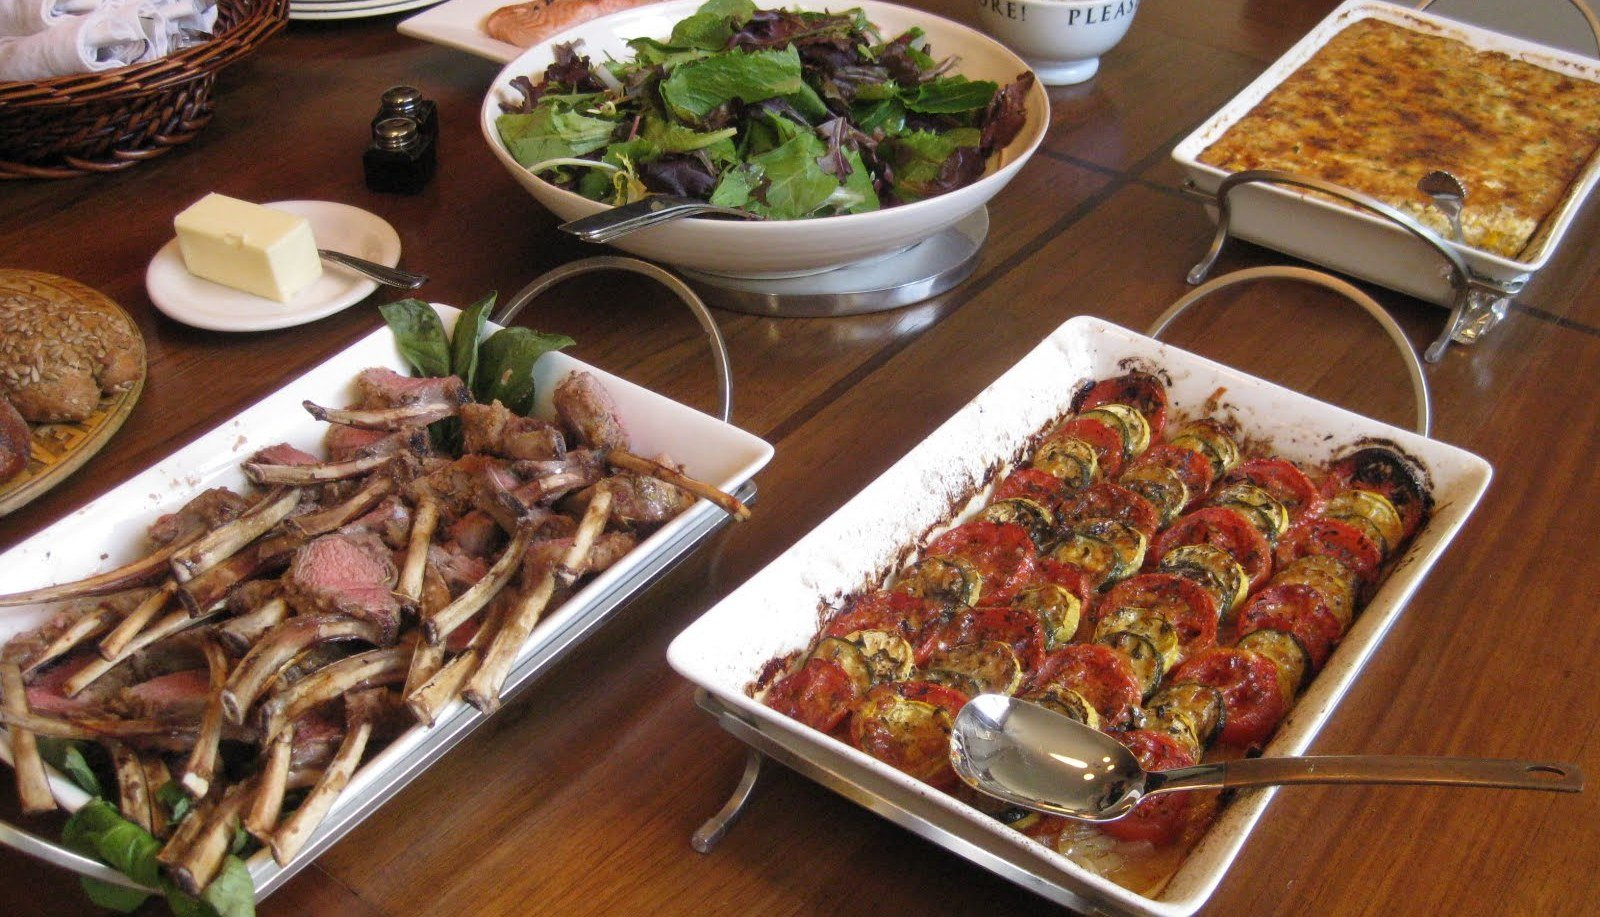 Selection of the cuisine for wedding